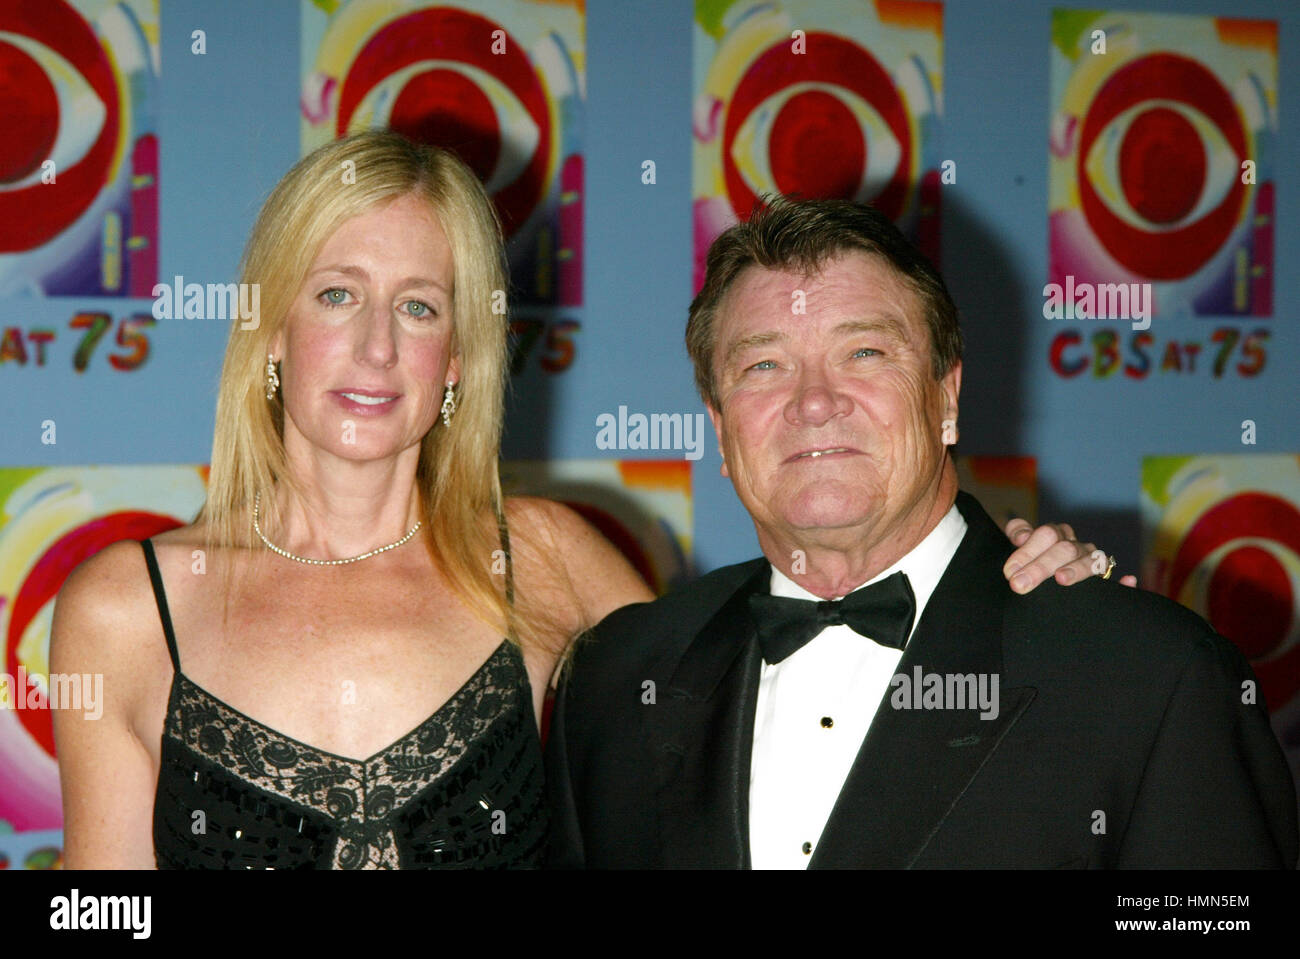 New York, USA. 2nd Nov, 2003. 08 January 2015 - New York, New York - Steve Kroft admits to extra - marital affair. - Stock Image